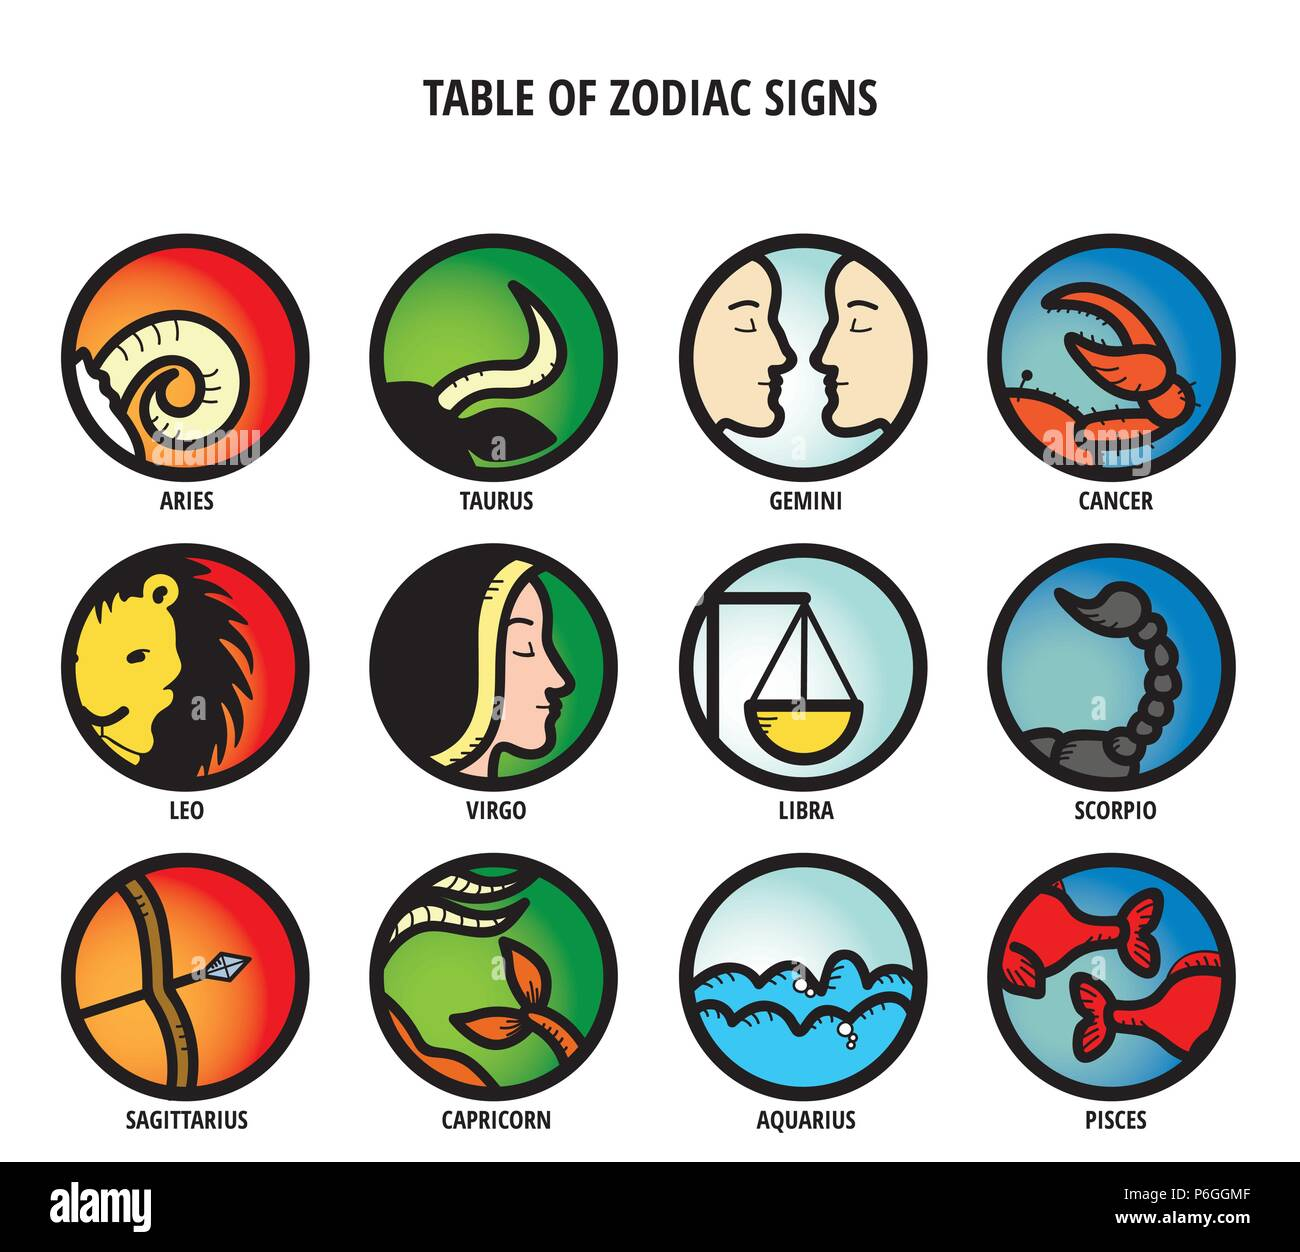 Zodiac Signs Stock Photos & Zodiac Signs Stock Images - Alamy